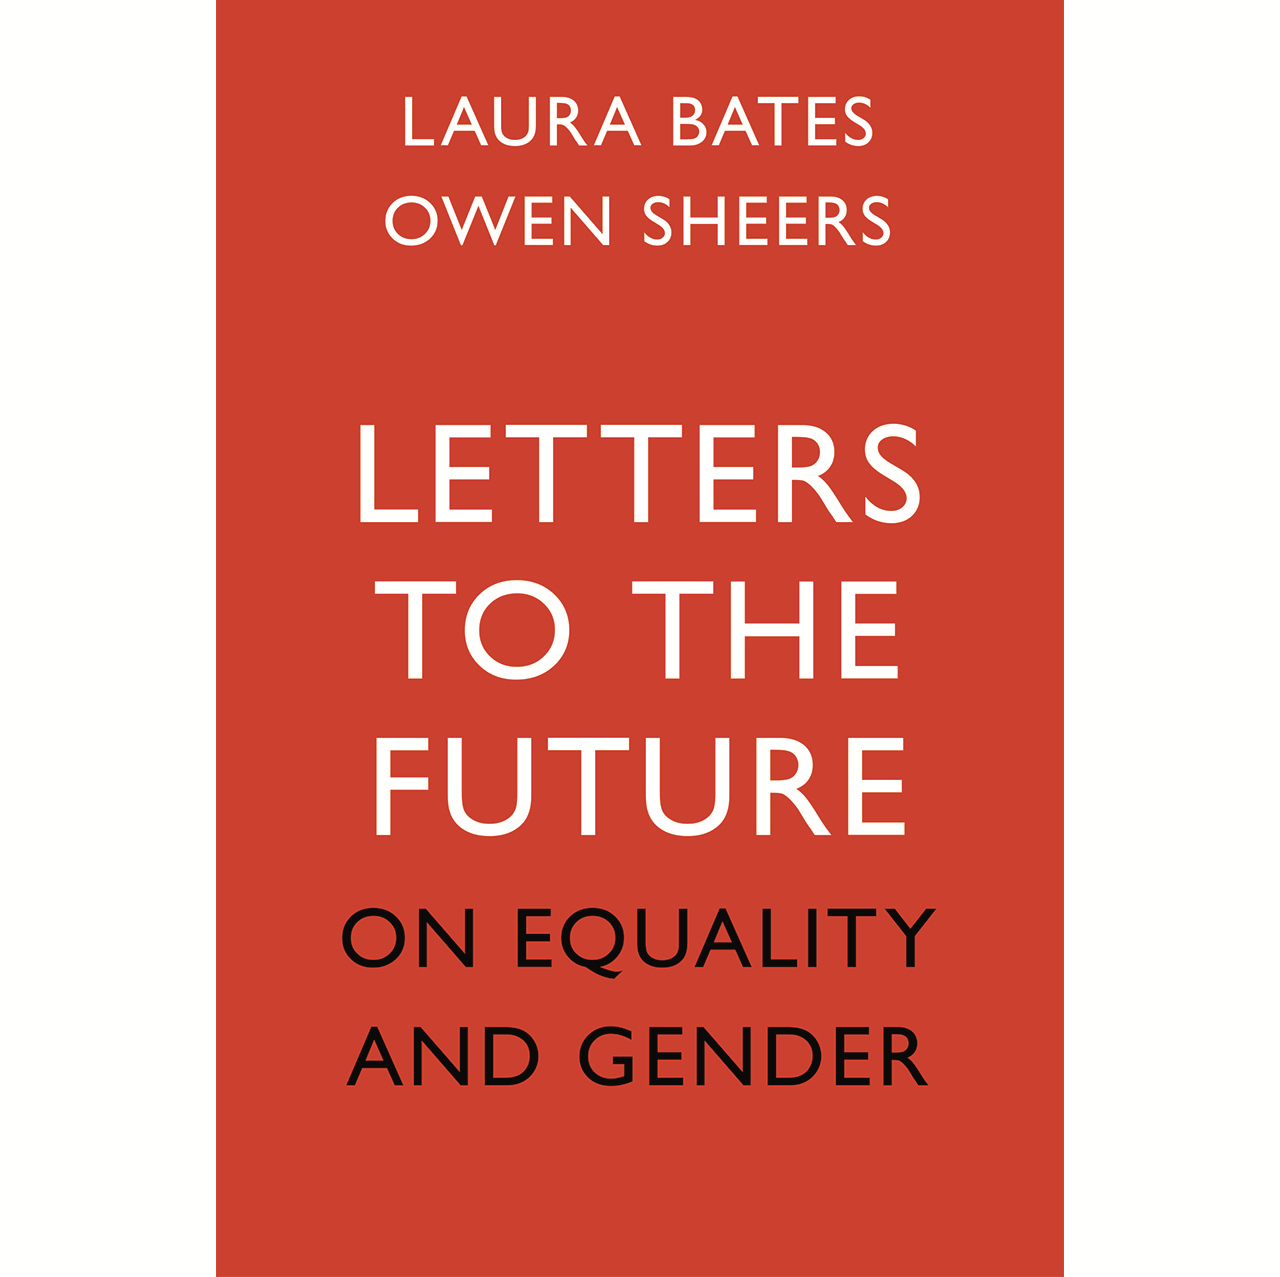 Letters to the Future book cover